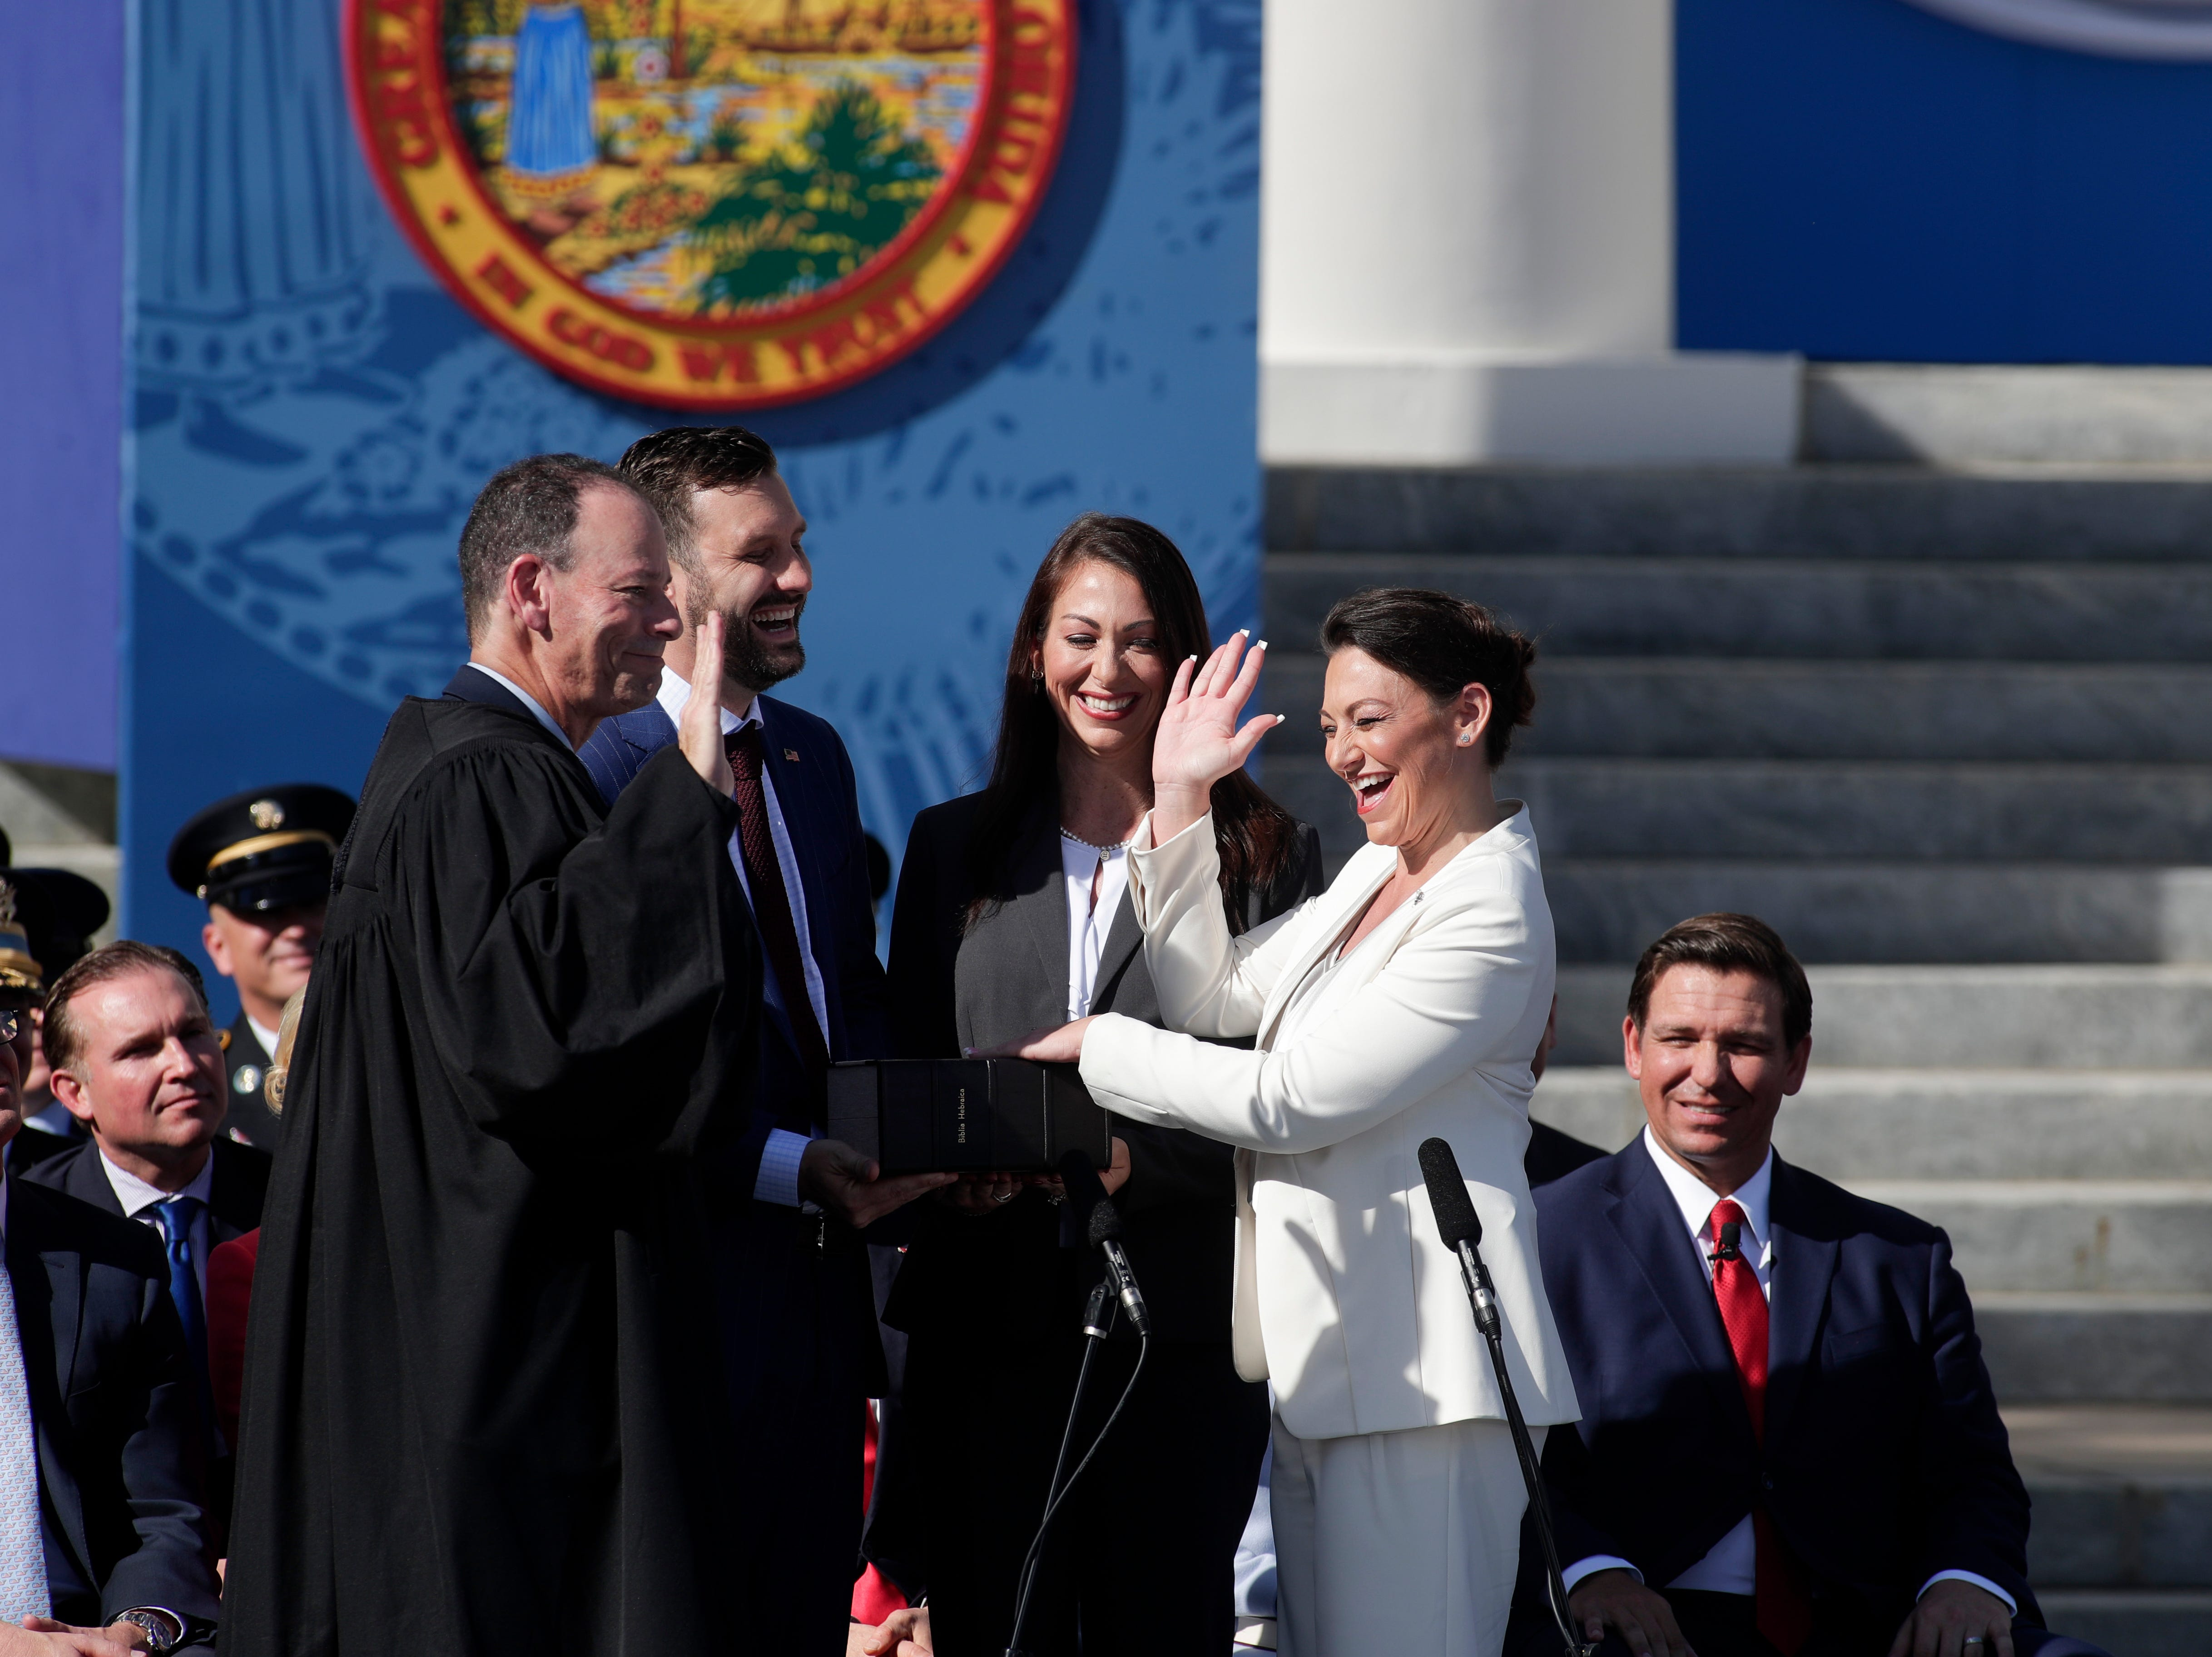 Commissioner of Agriculture and Consumer Services Nikki Fried laughs as she slips up reciting the words of her Oath of Office during the 2019 inauguration ceremony on the steps of the Historic Capitol Building in Tallahassee Tuesday, Jan. 8, 2019.